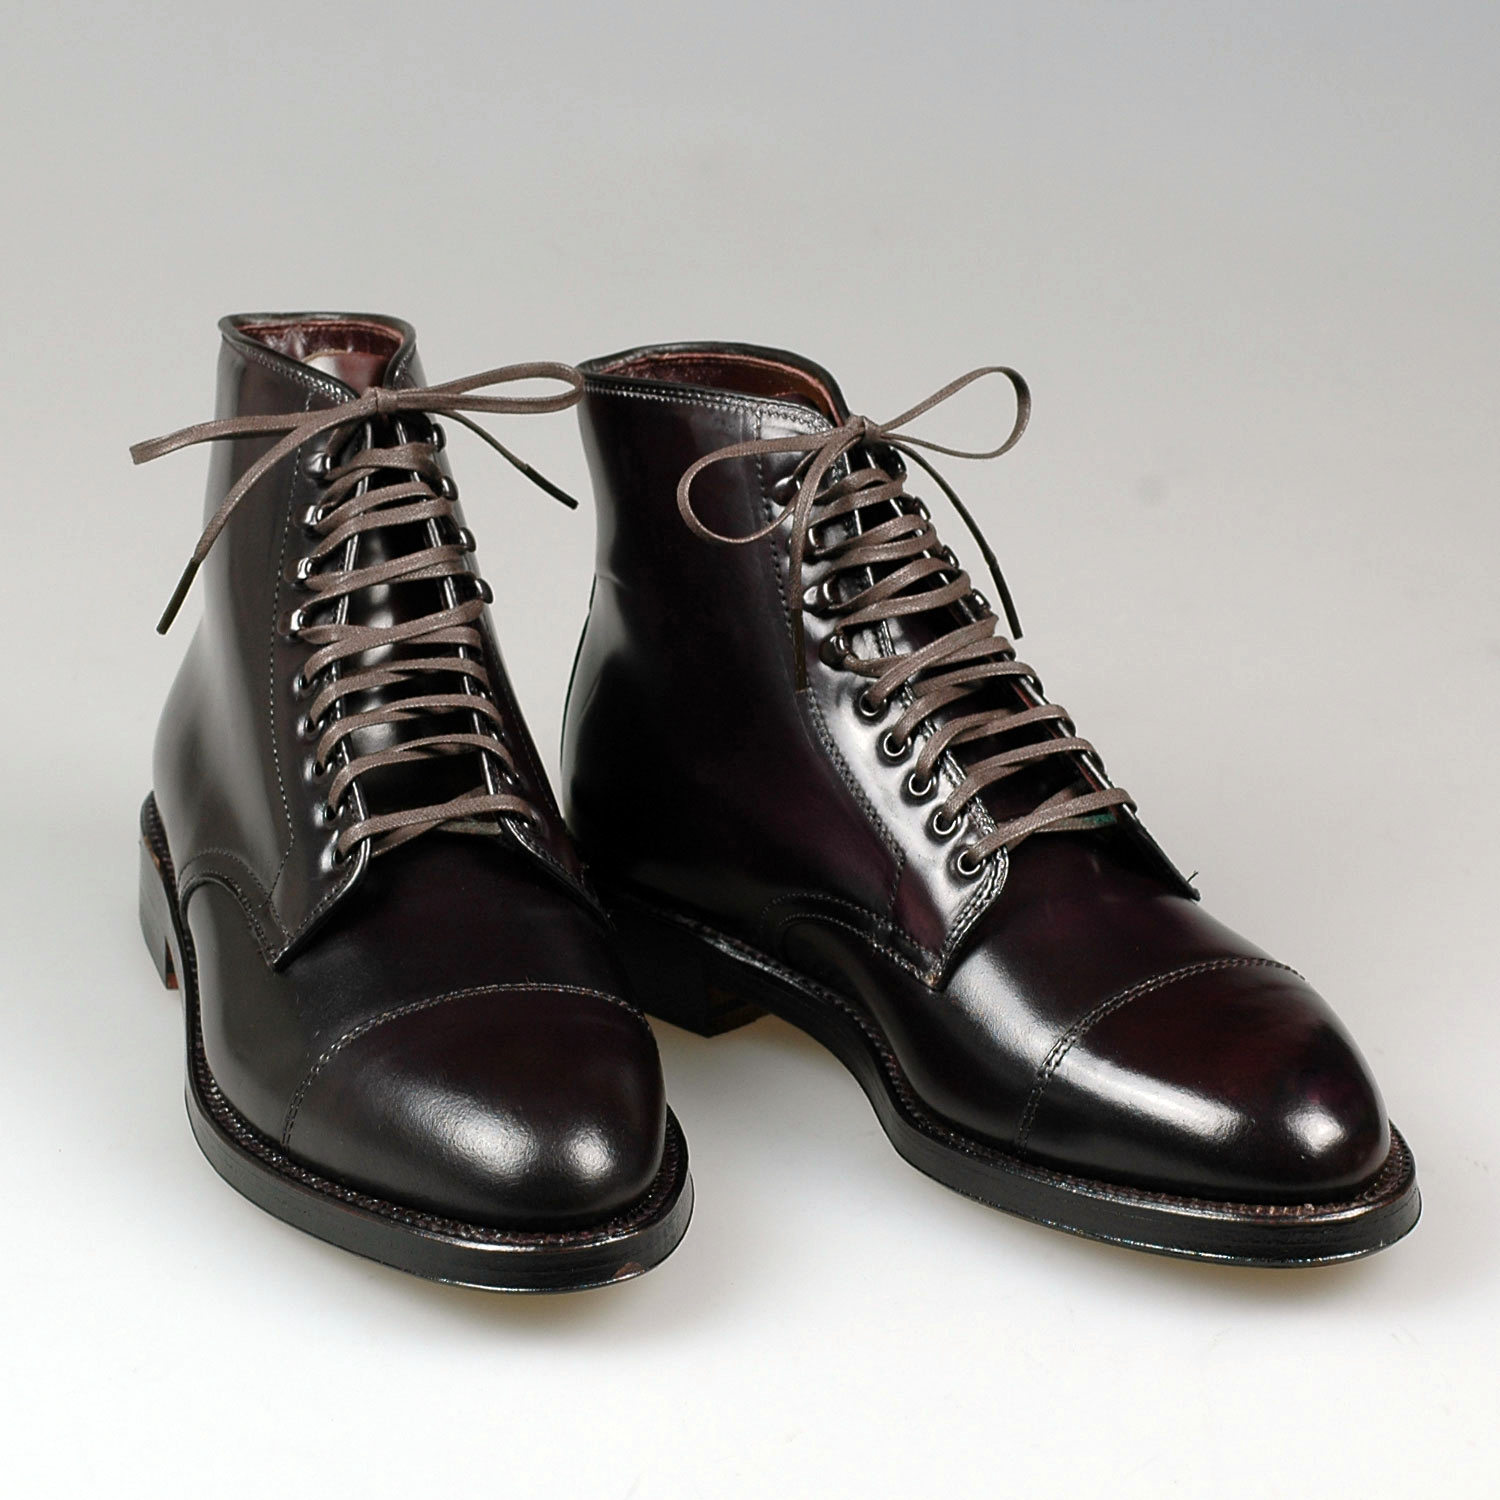 06f564175387 Shell Cordovan - Durability at its finest - Inspiration - About us ...